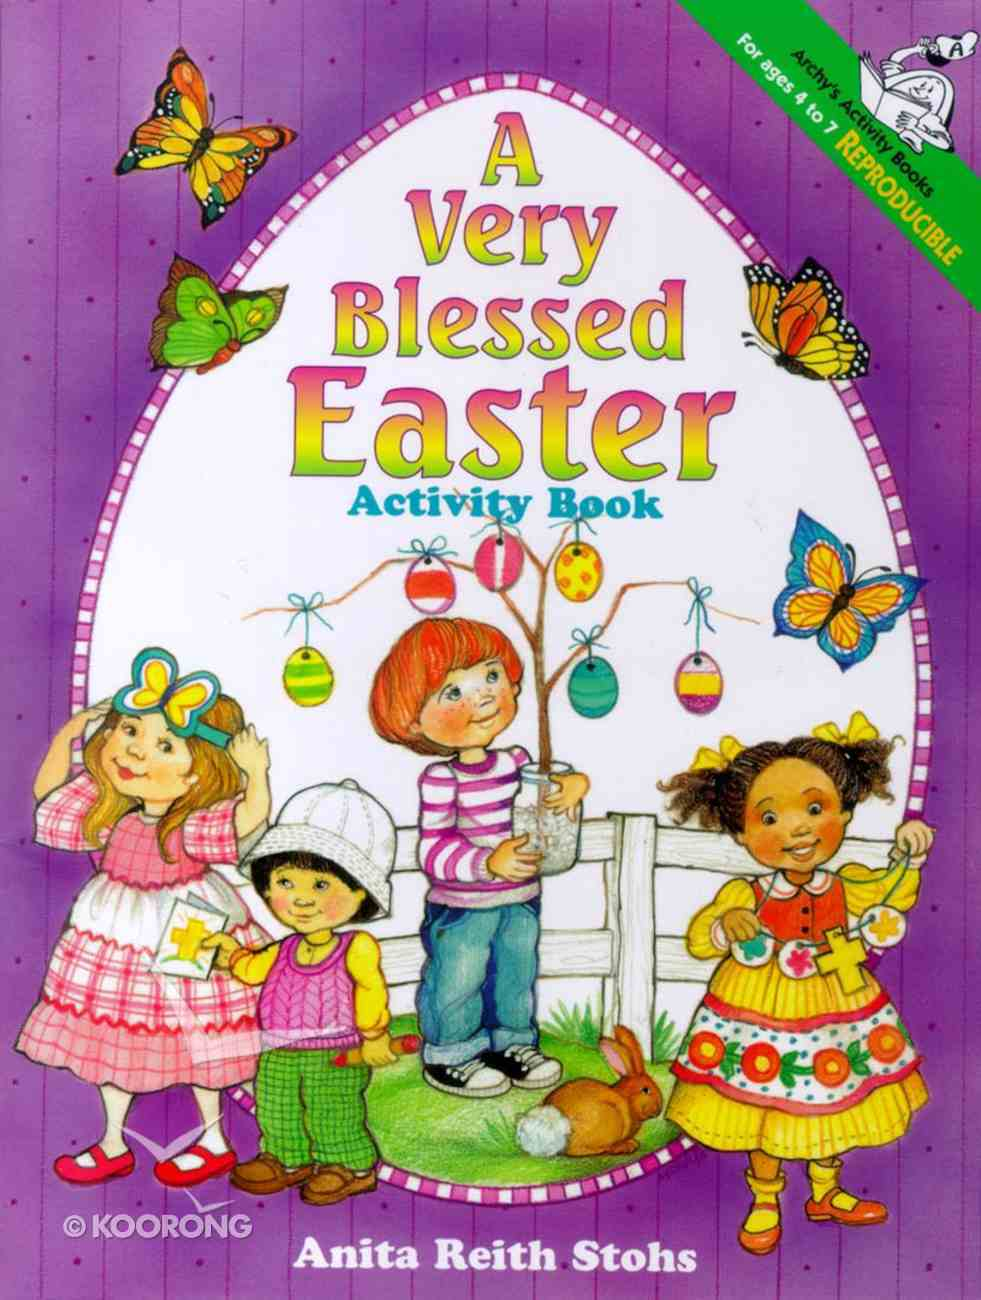 A Very Blessed Easter (Activity Book) Paperback